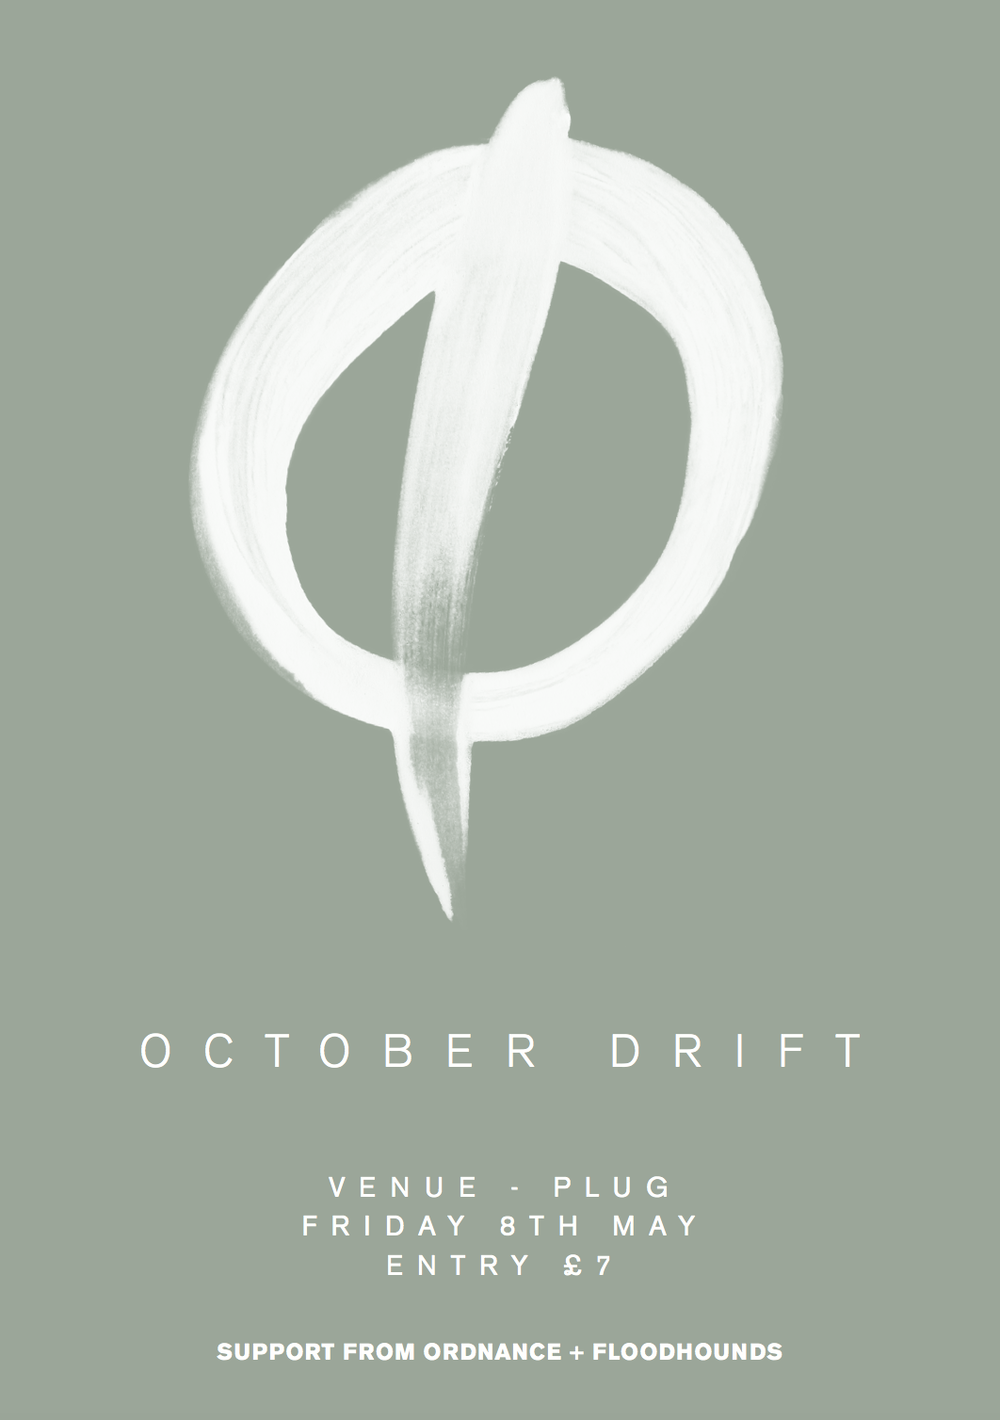 October Drift at Plug.png